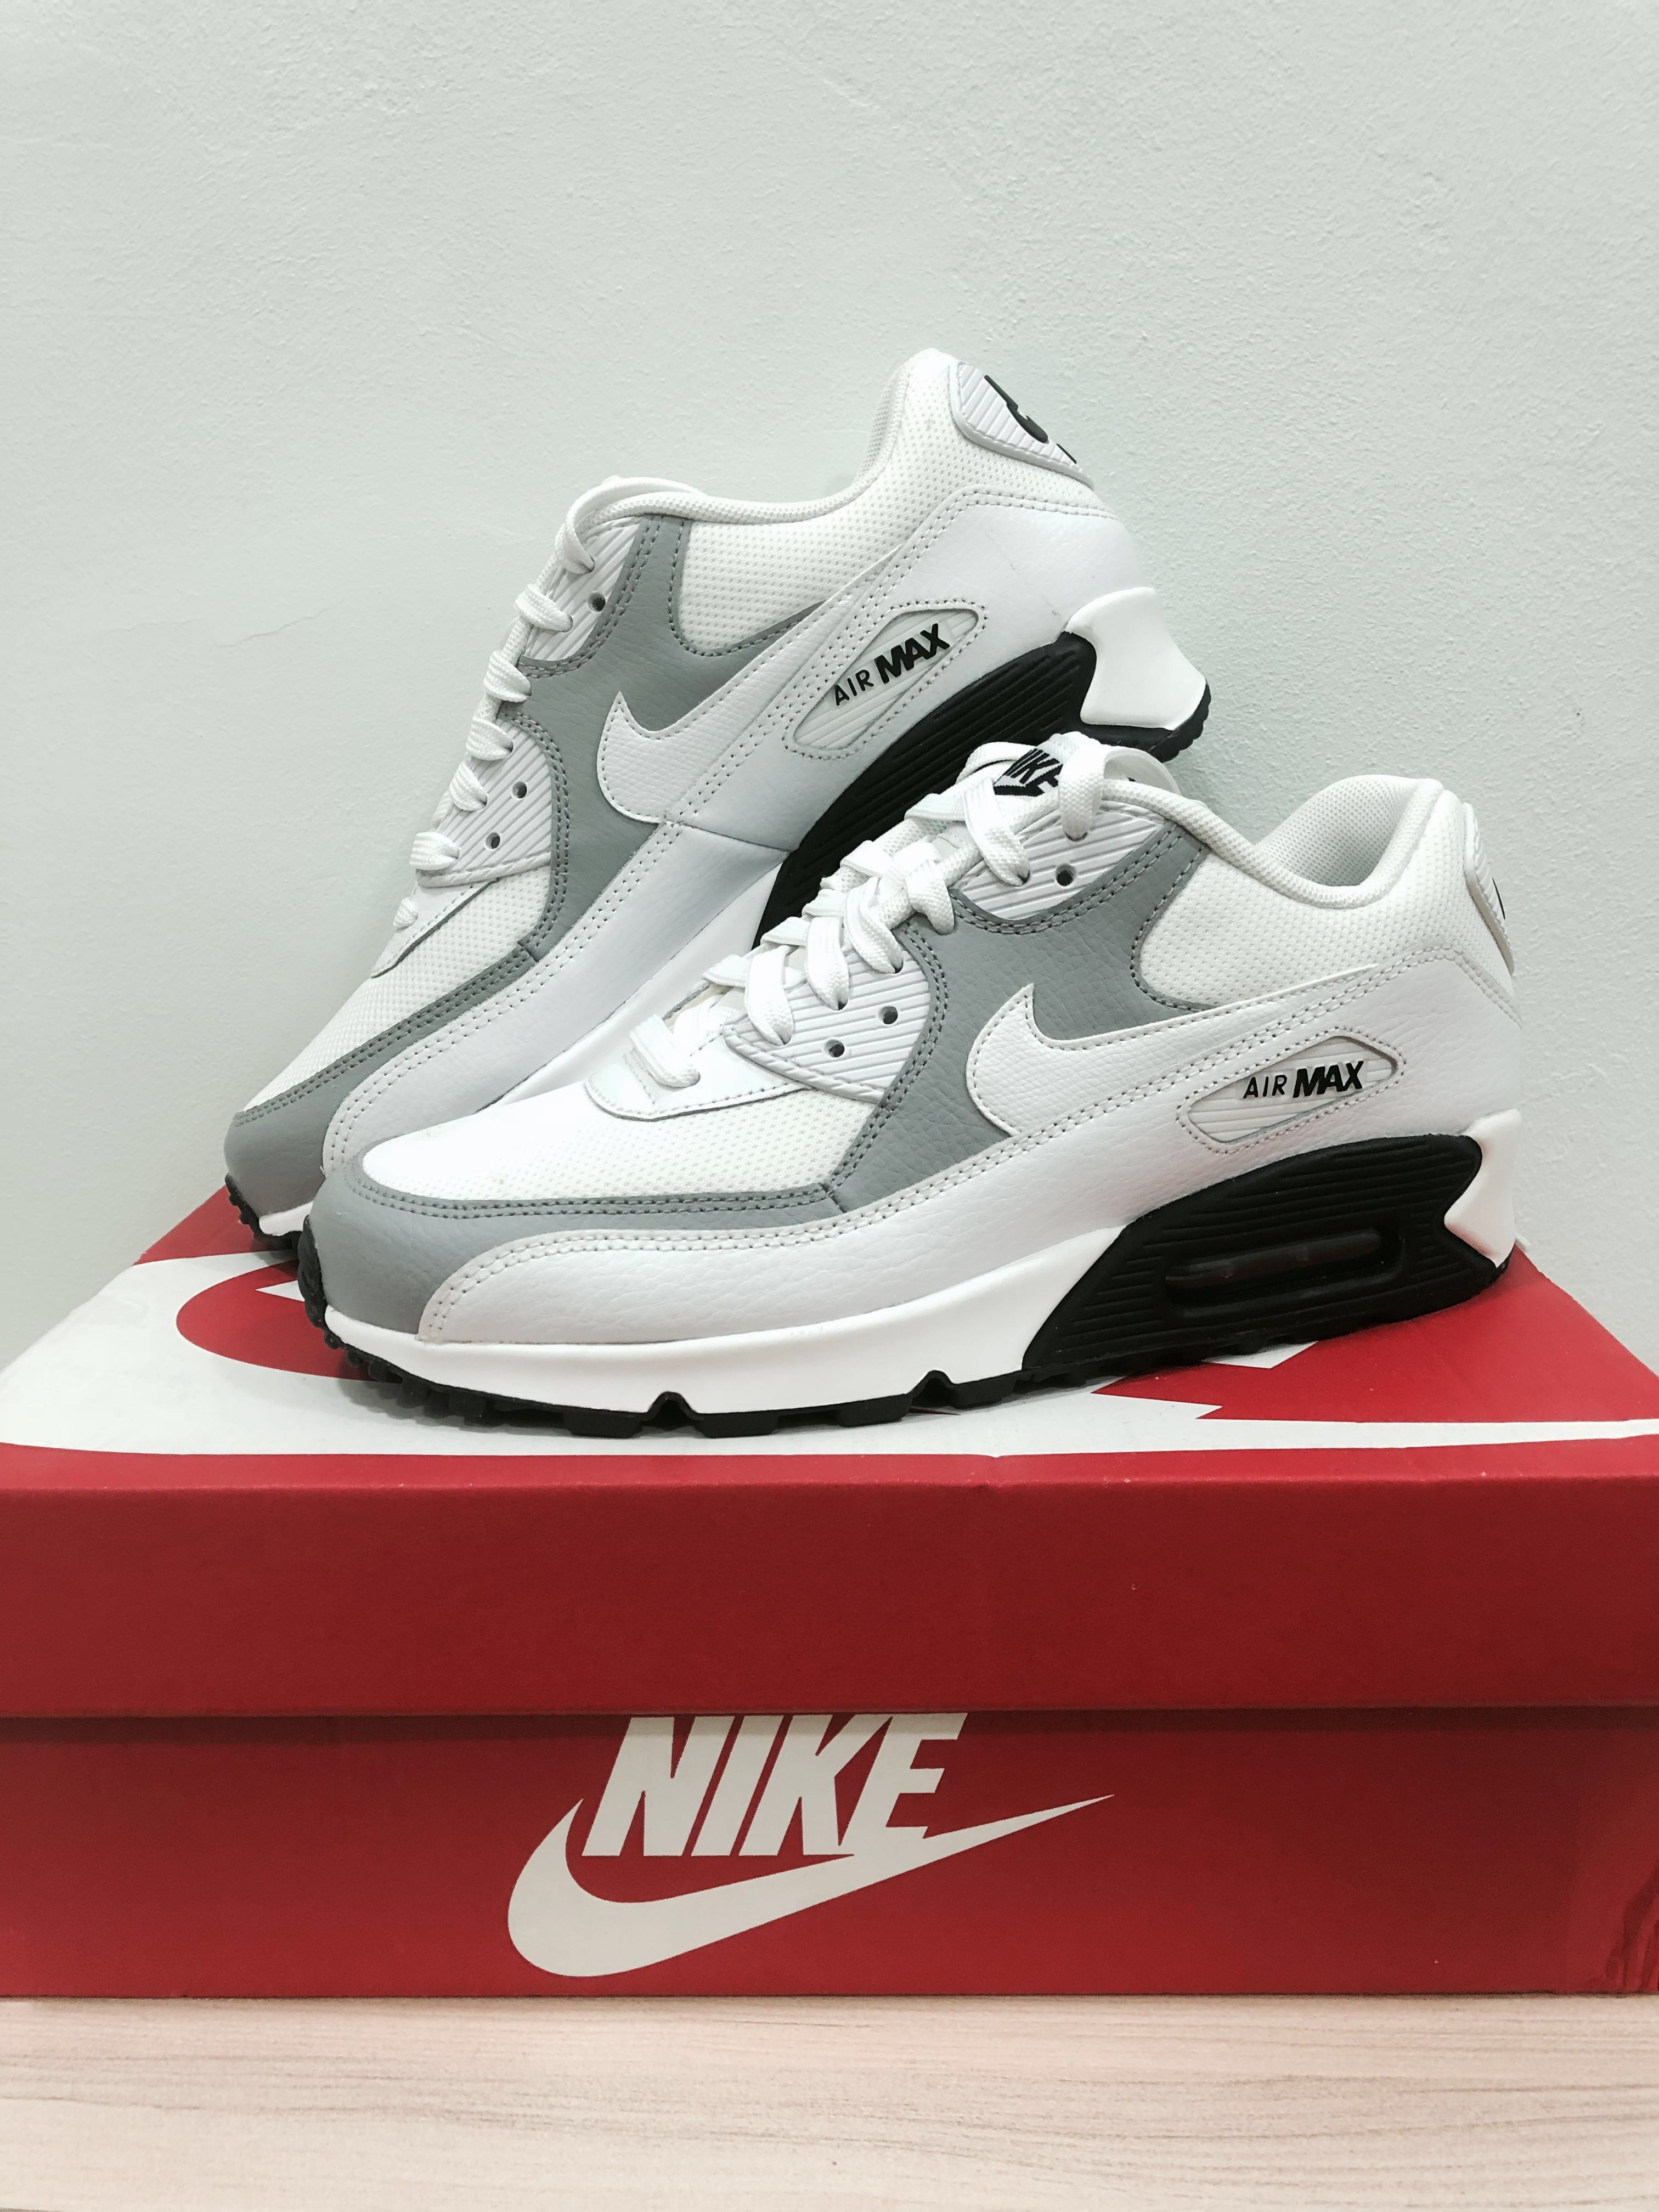 free shipping 9218f b66ee Nike Air Max 90 Wolf Grey Black Shoes, Sports, Sports Apparel on ...